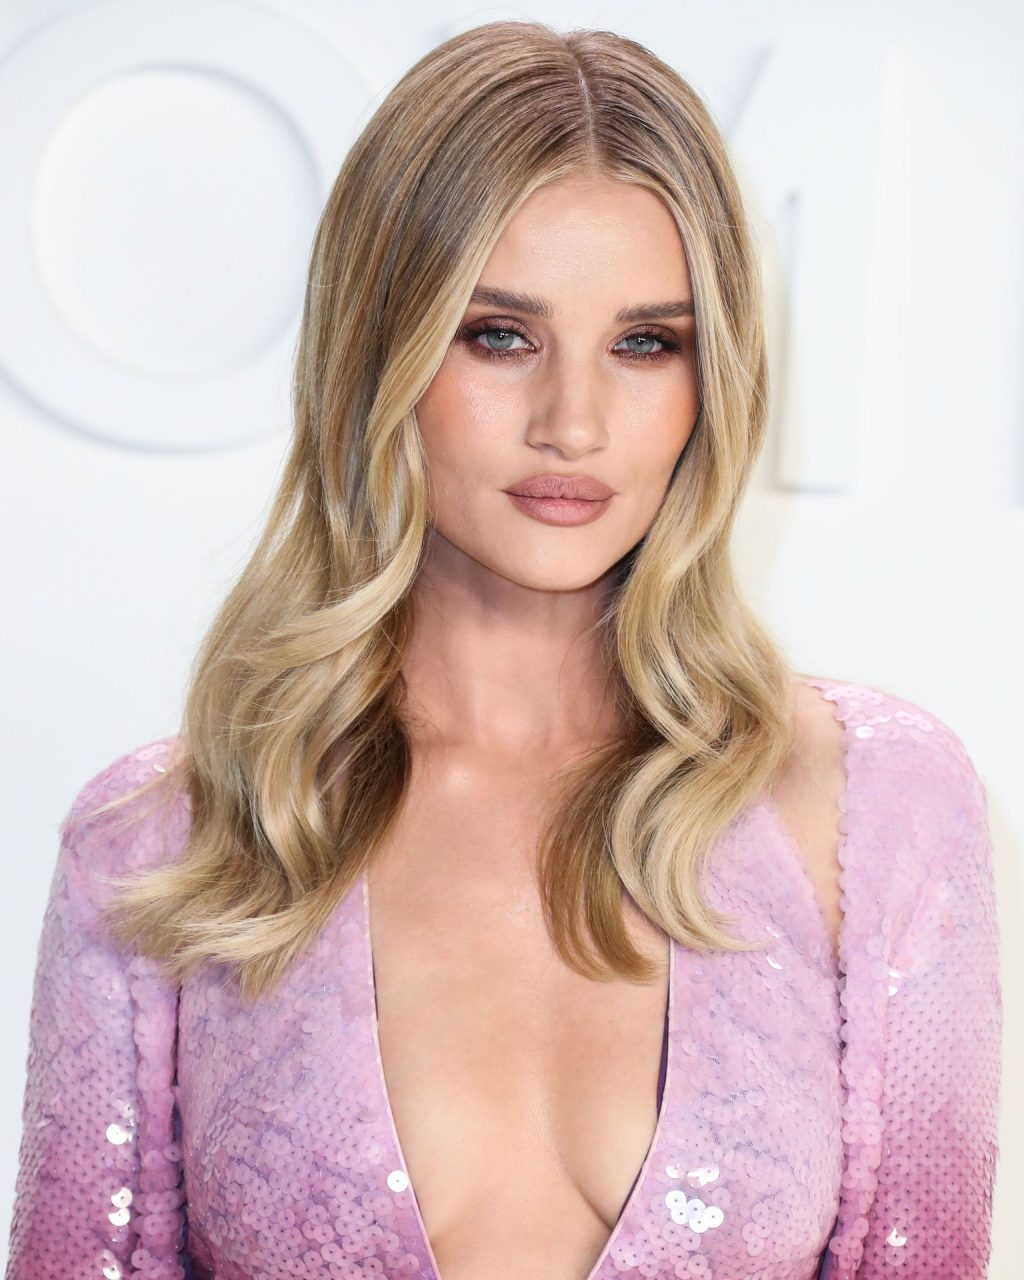 Rosie Huntington Whiteley Sexy The Fappening Blog 66 1024x1280 - Rosie Huntington-Whiteley Shows Her Cleavage at the Tom Ford Fashion Show (115 Photos)